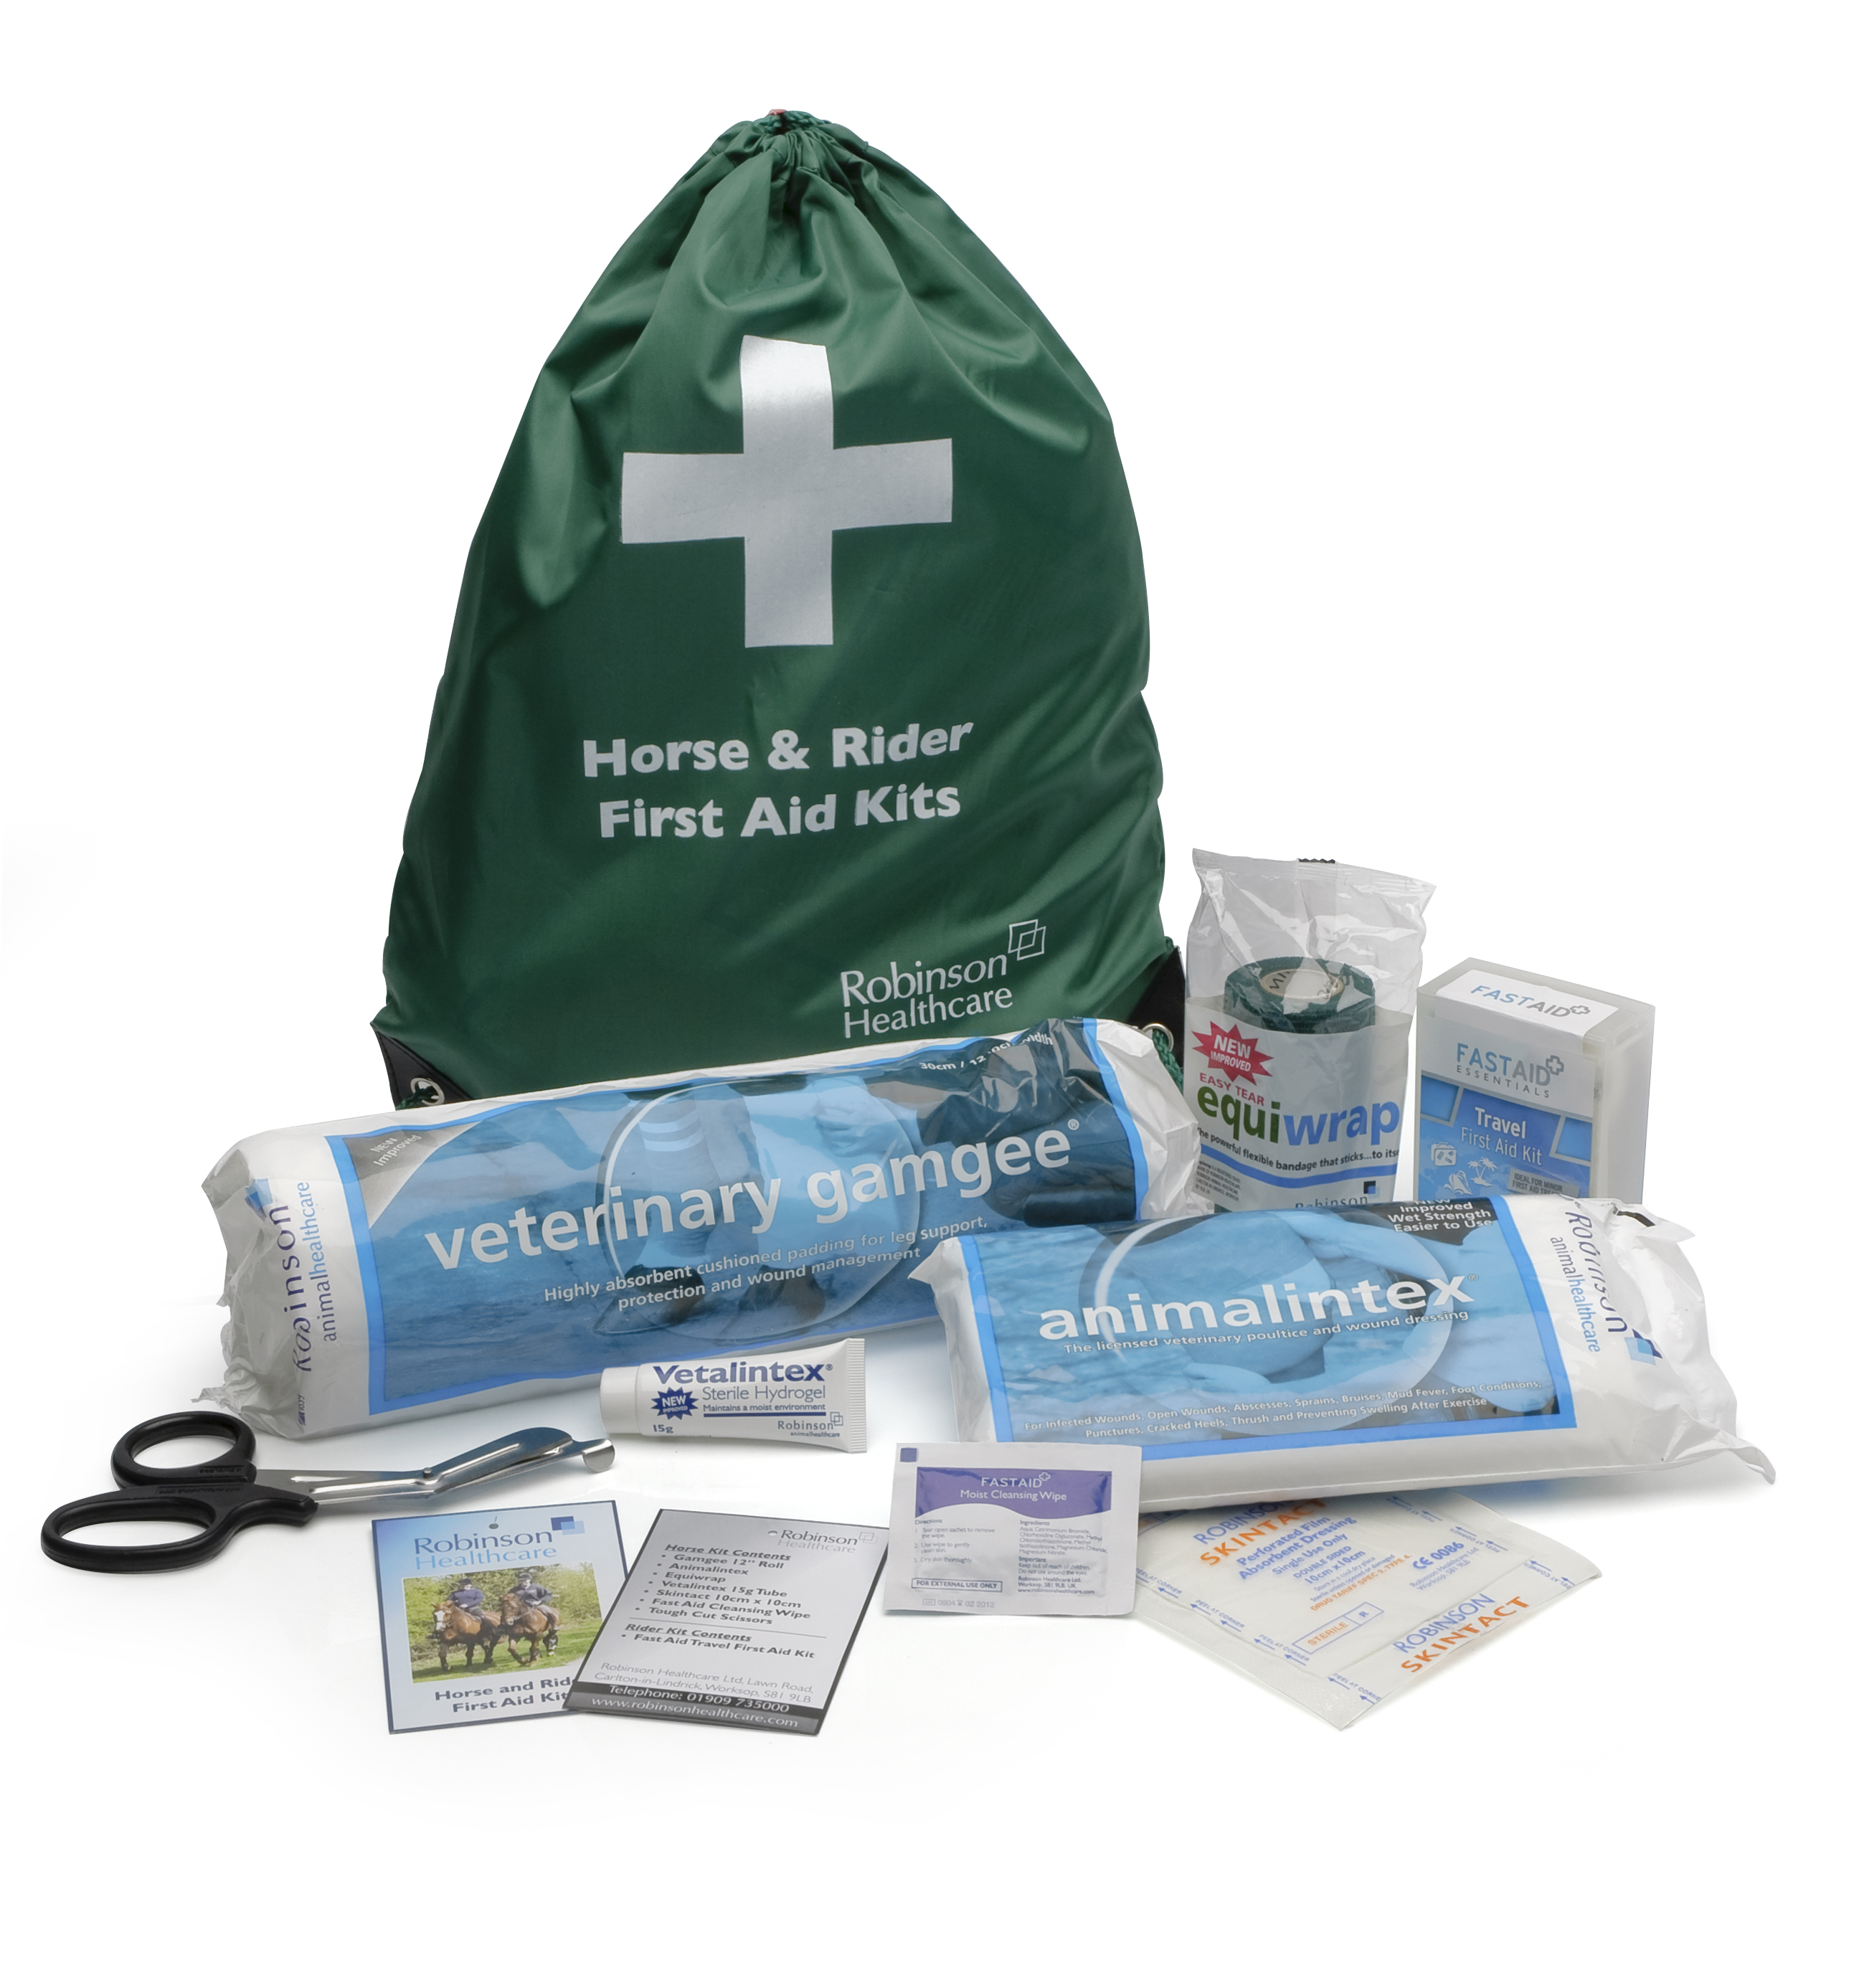 Robinson Horse & Rider First Aid Kit